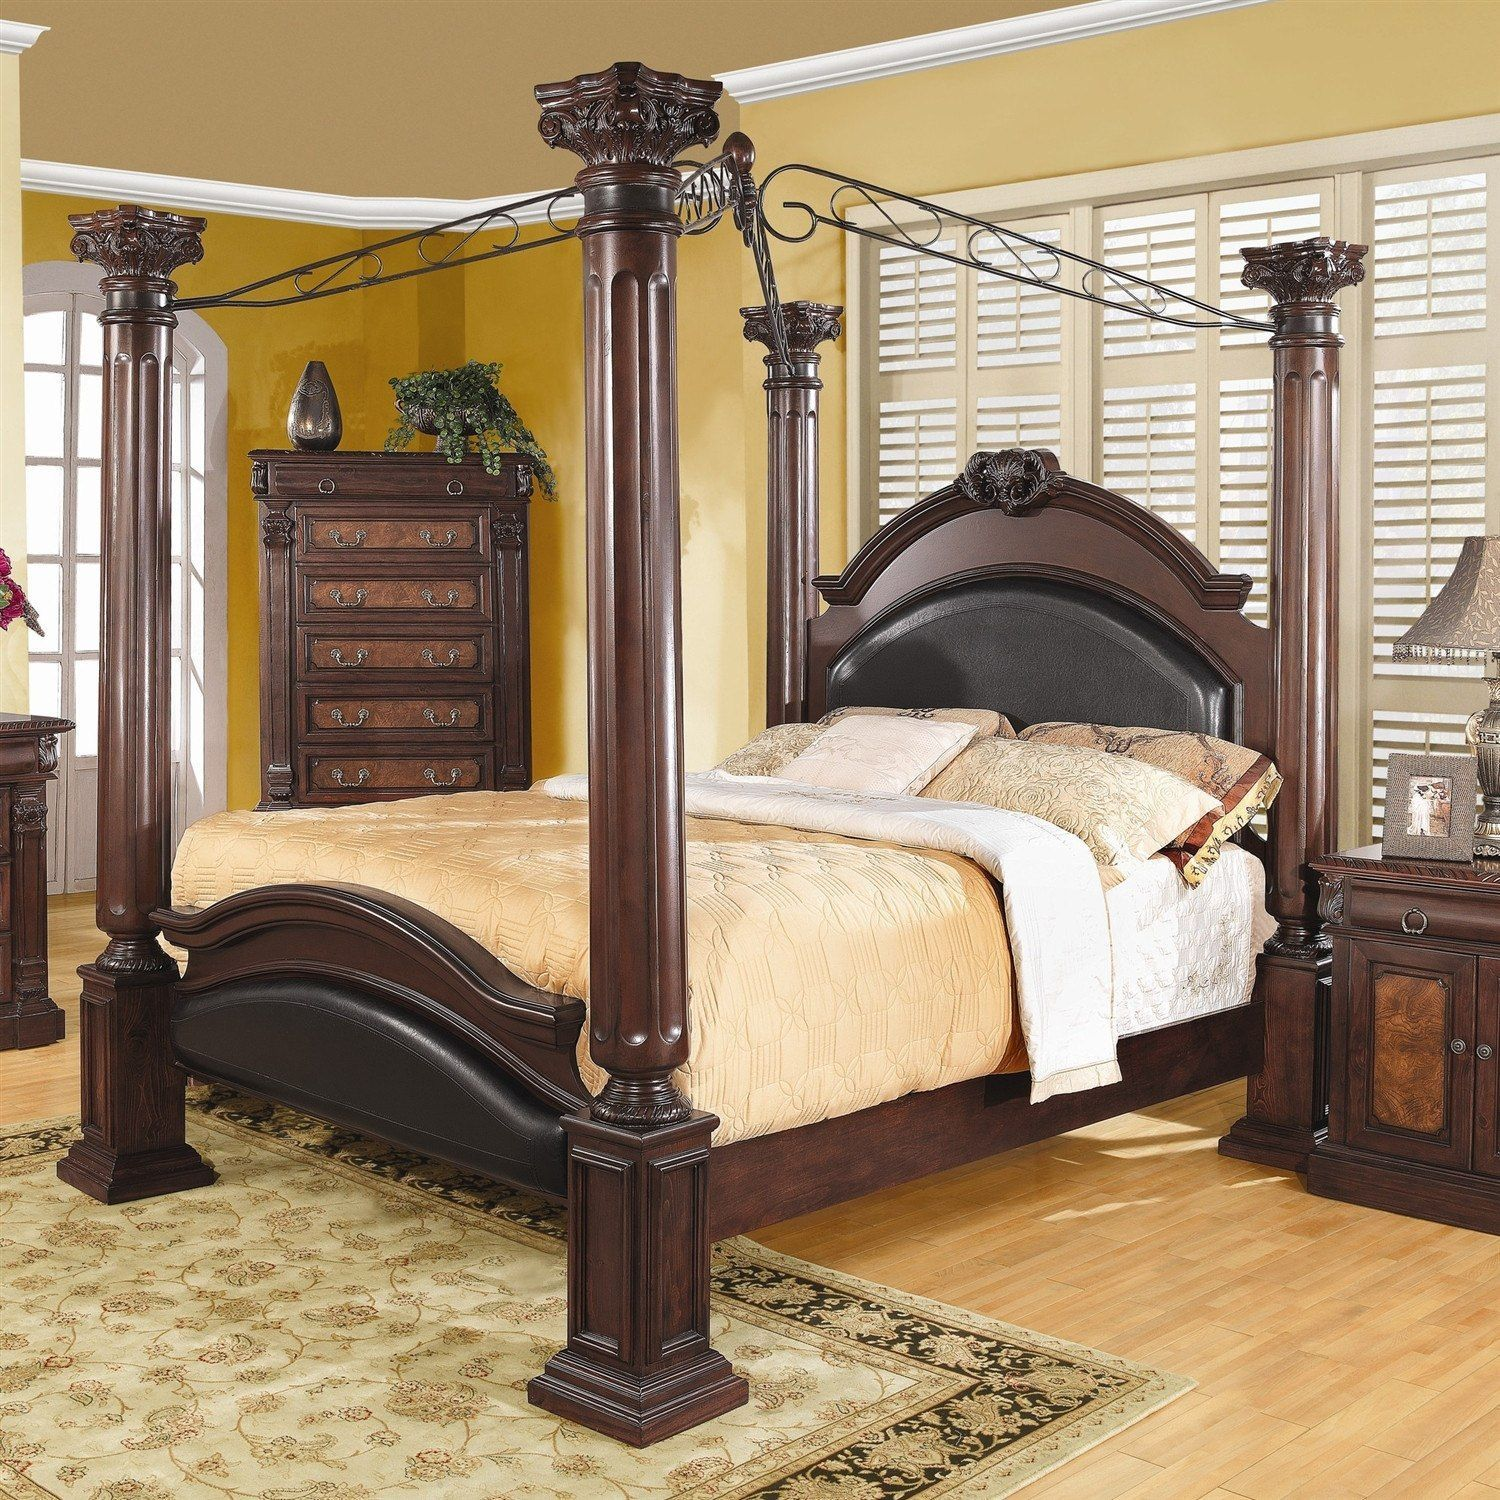 Baby jasper bed brackets - 4 Poster Beds